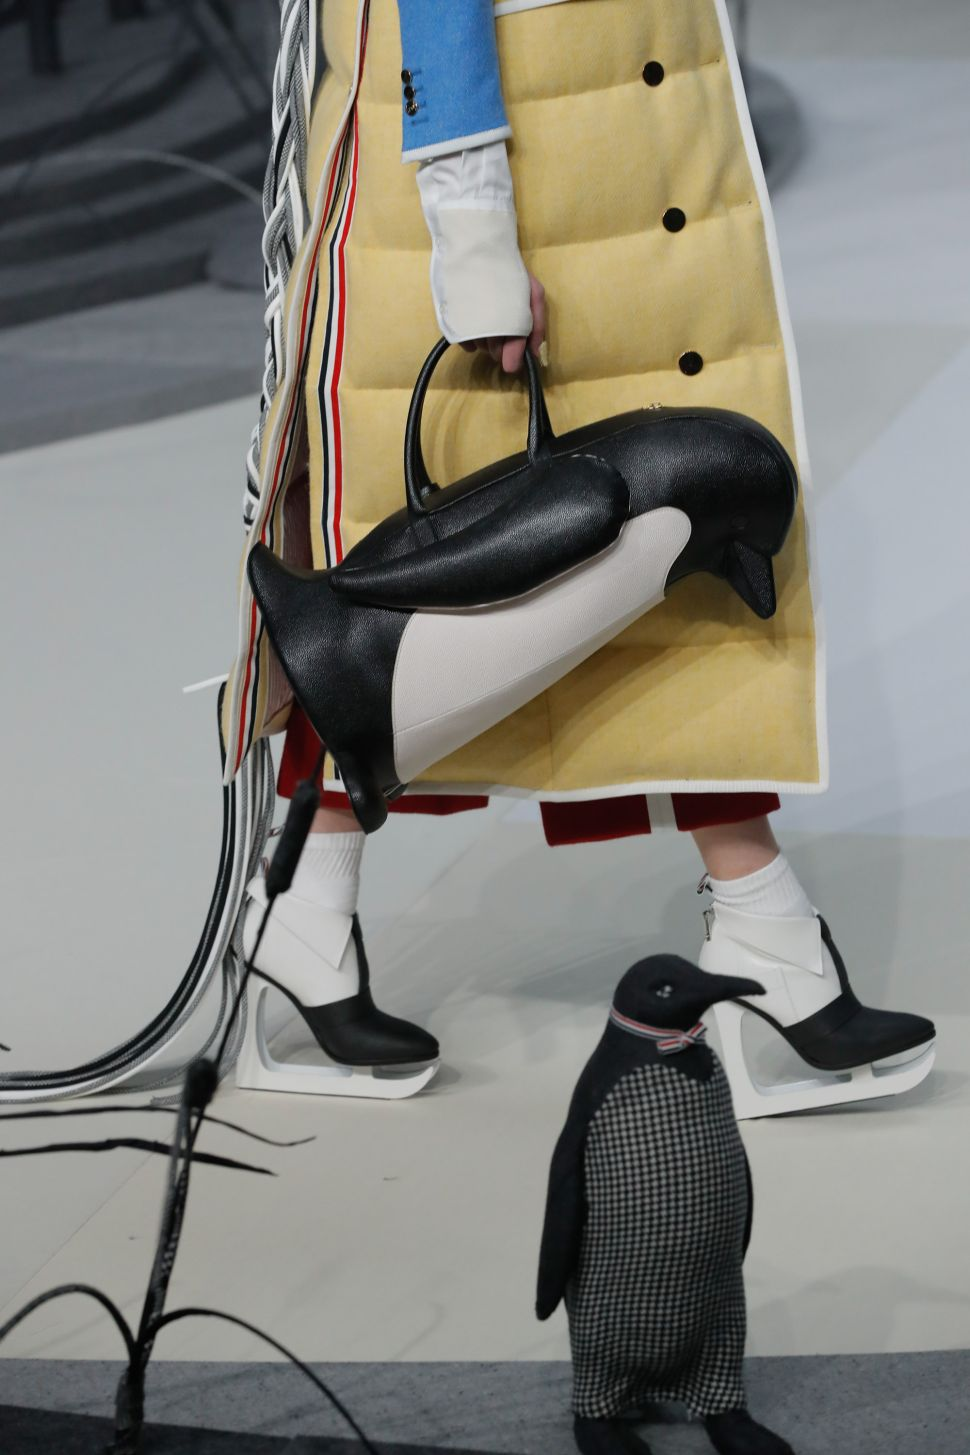 Penguin Bags & Ice Skate Heels at Thom Browne's NYFW Showing